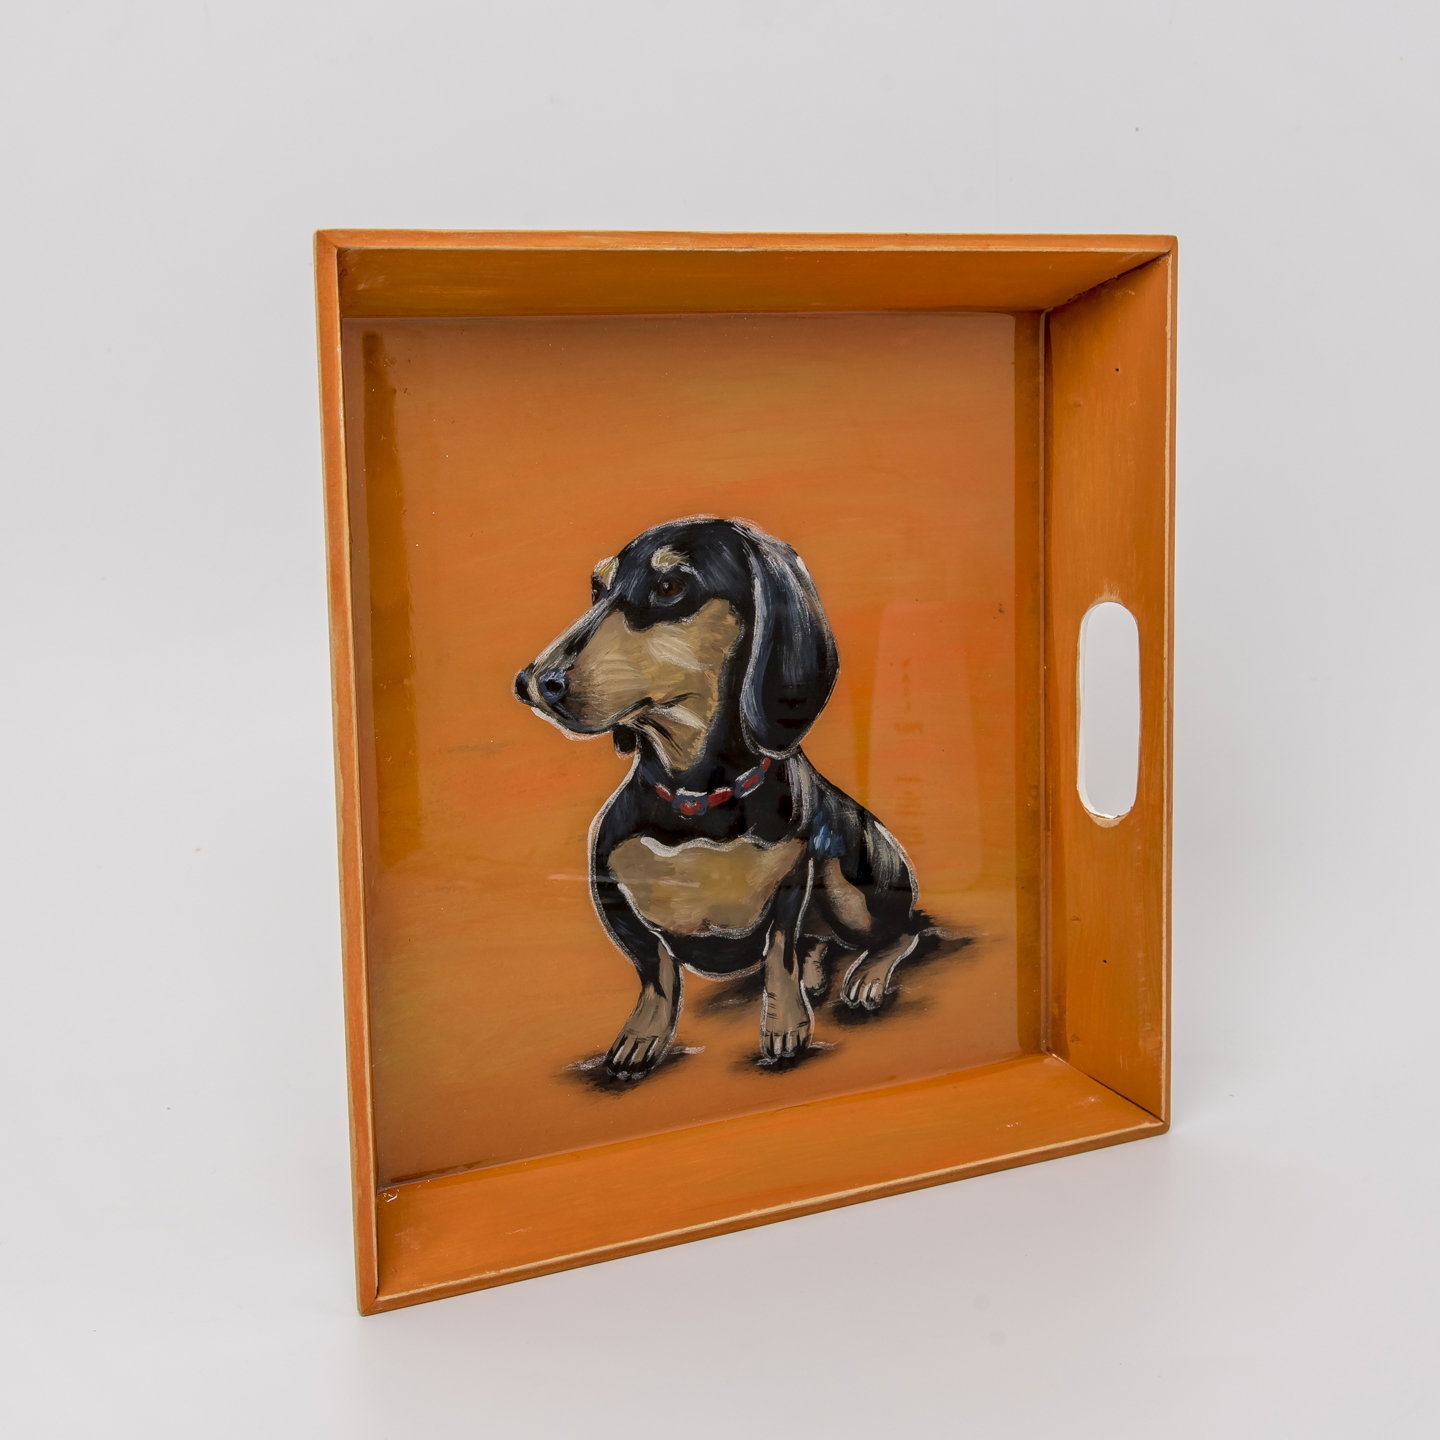 Handpainted Tray - Black & Tan Dog